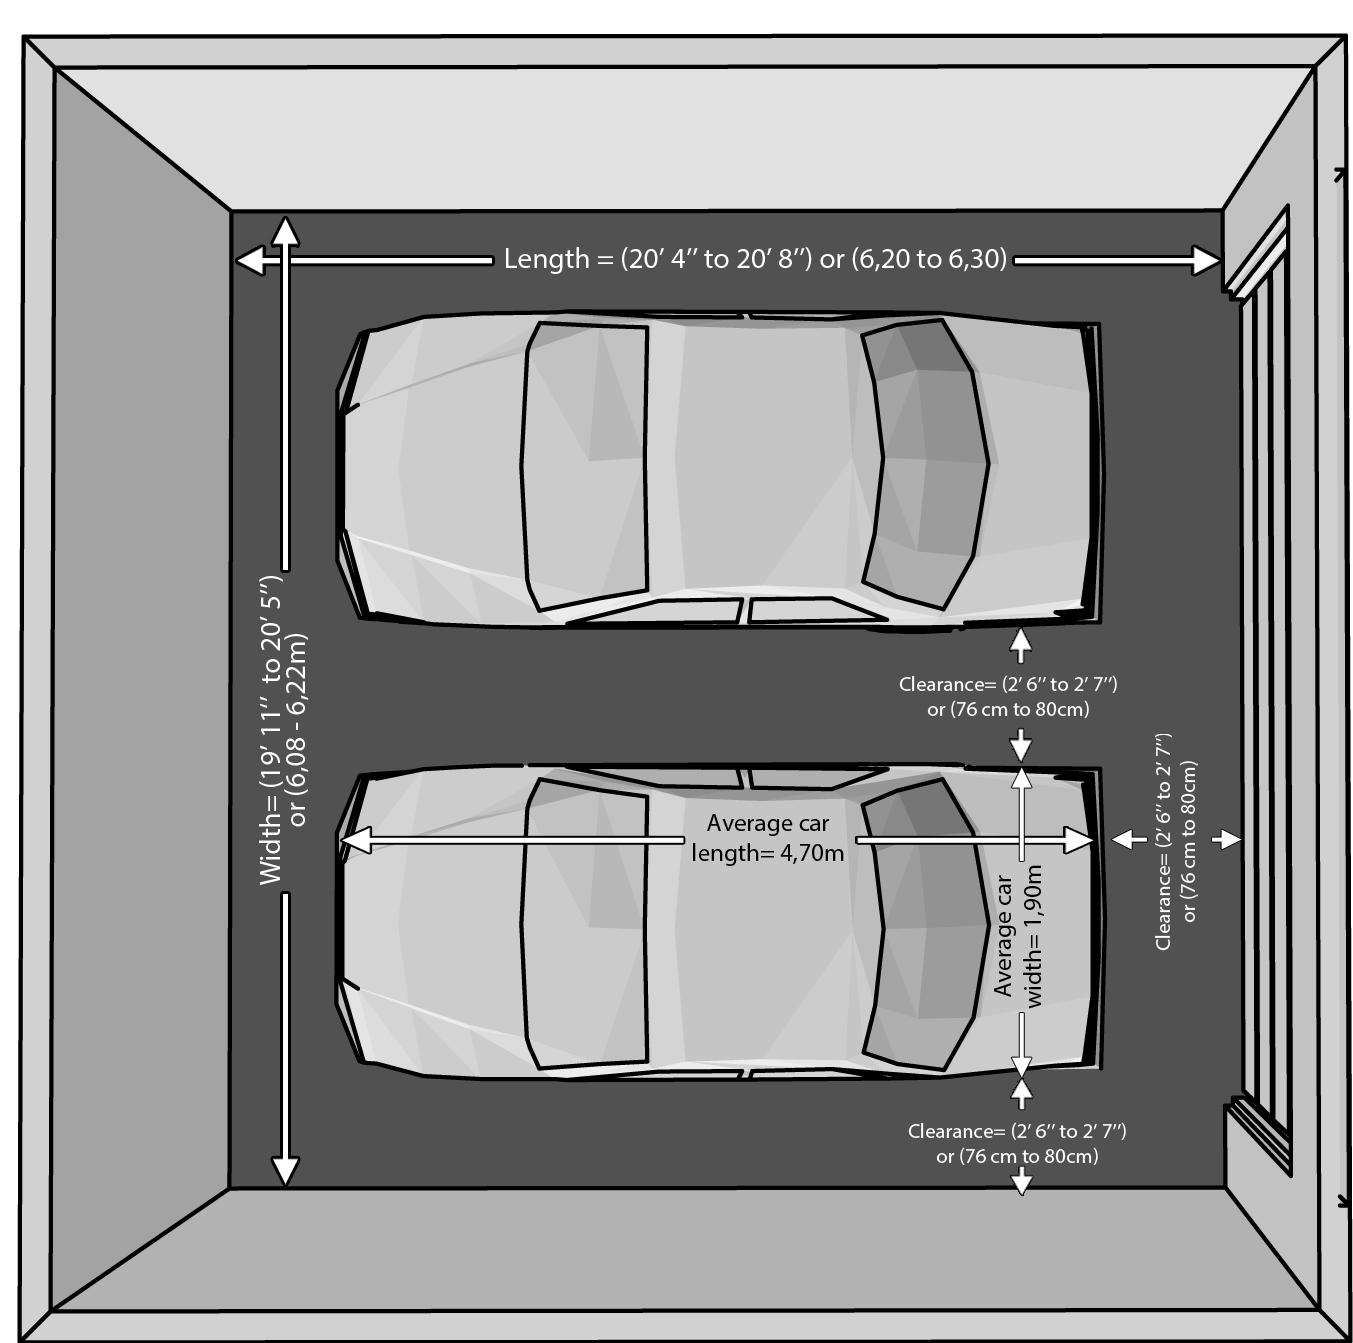 The dimensions of an one car and a two car garage for 4 car garage dimensions